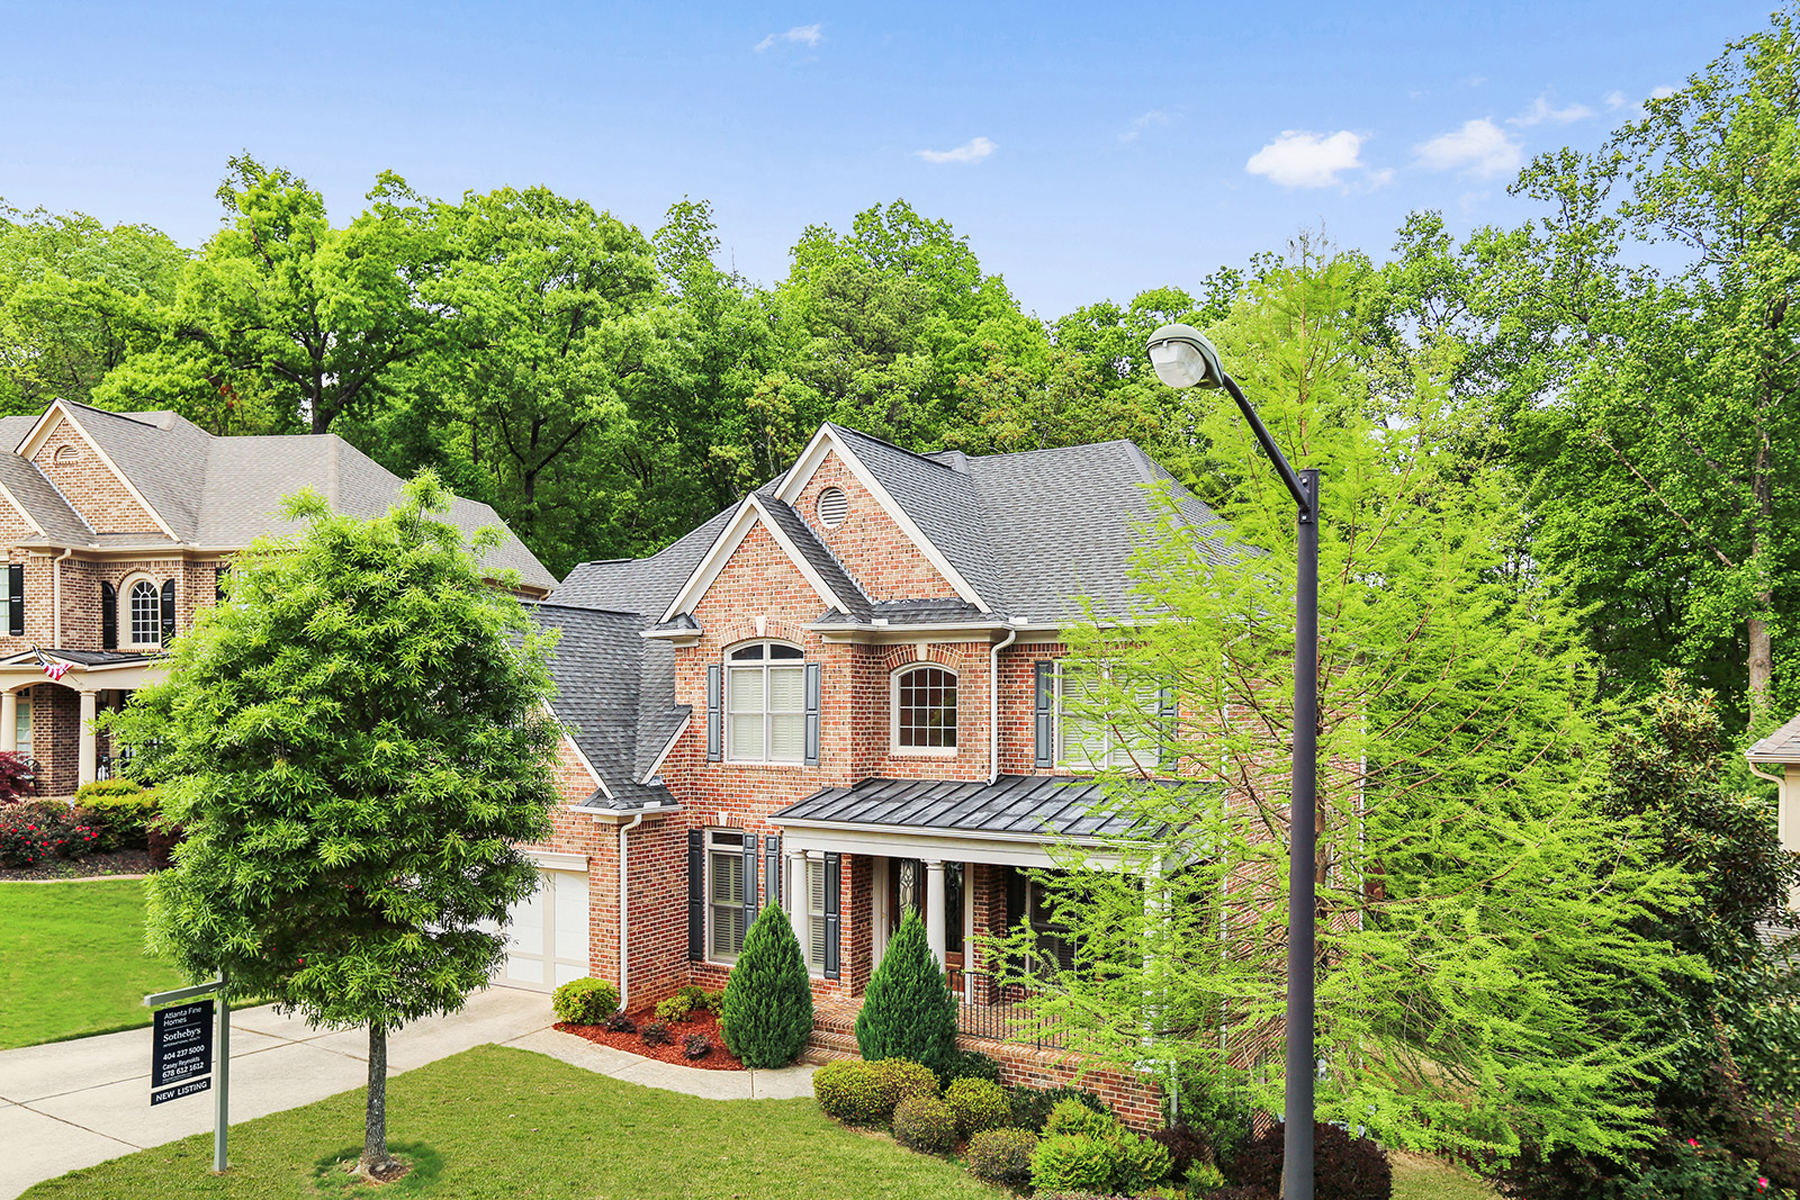 Single Family Home for Sale at A Sophisticated Mableton Masterpiece 5546 Highland Preserve Drive Mableton, Georgia, 30126 United States